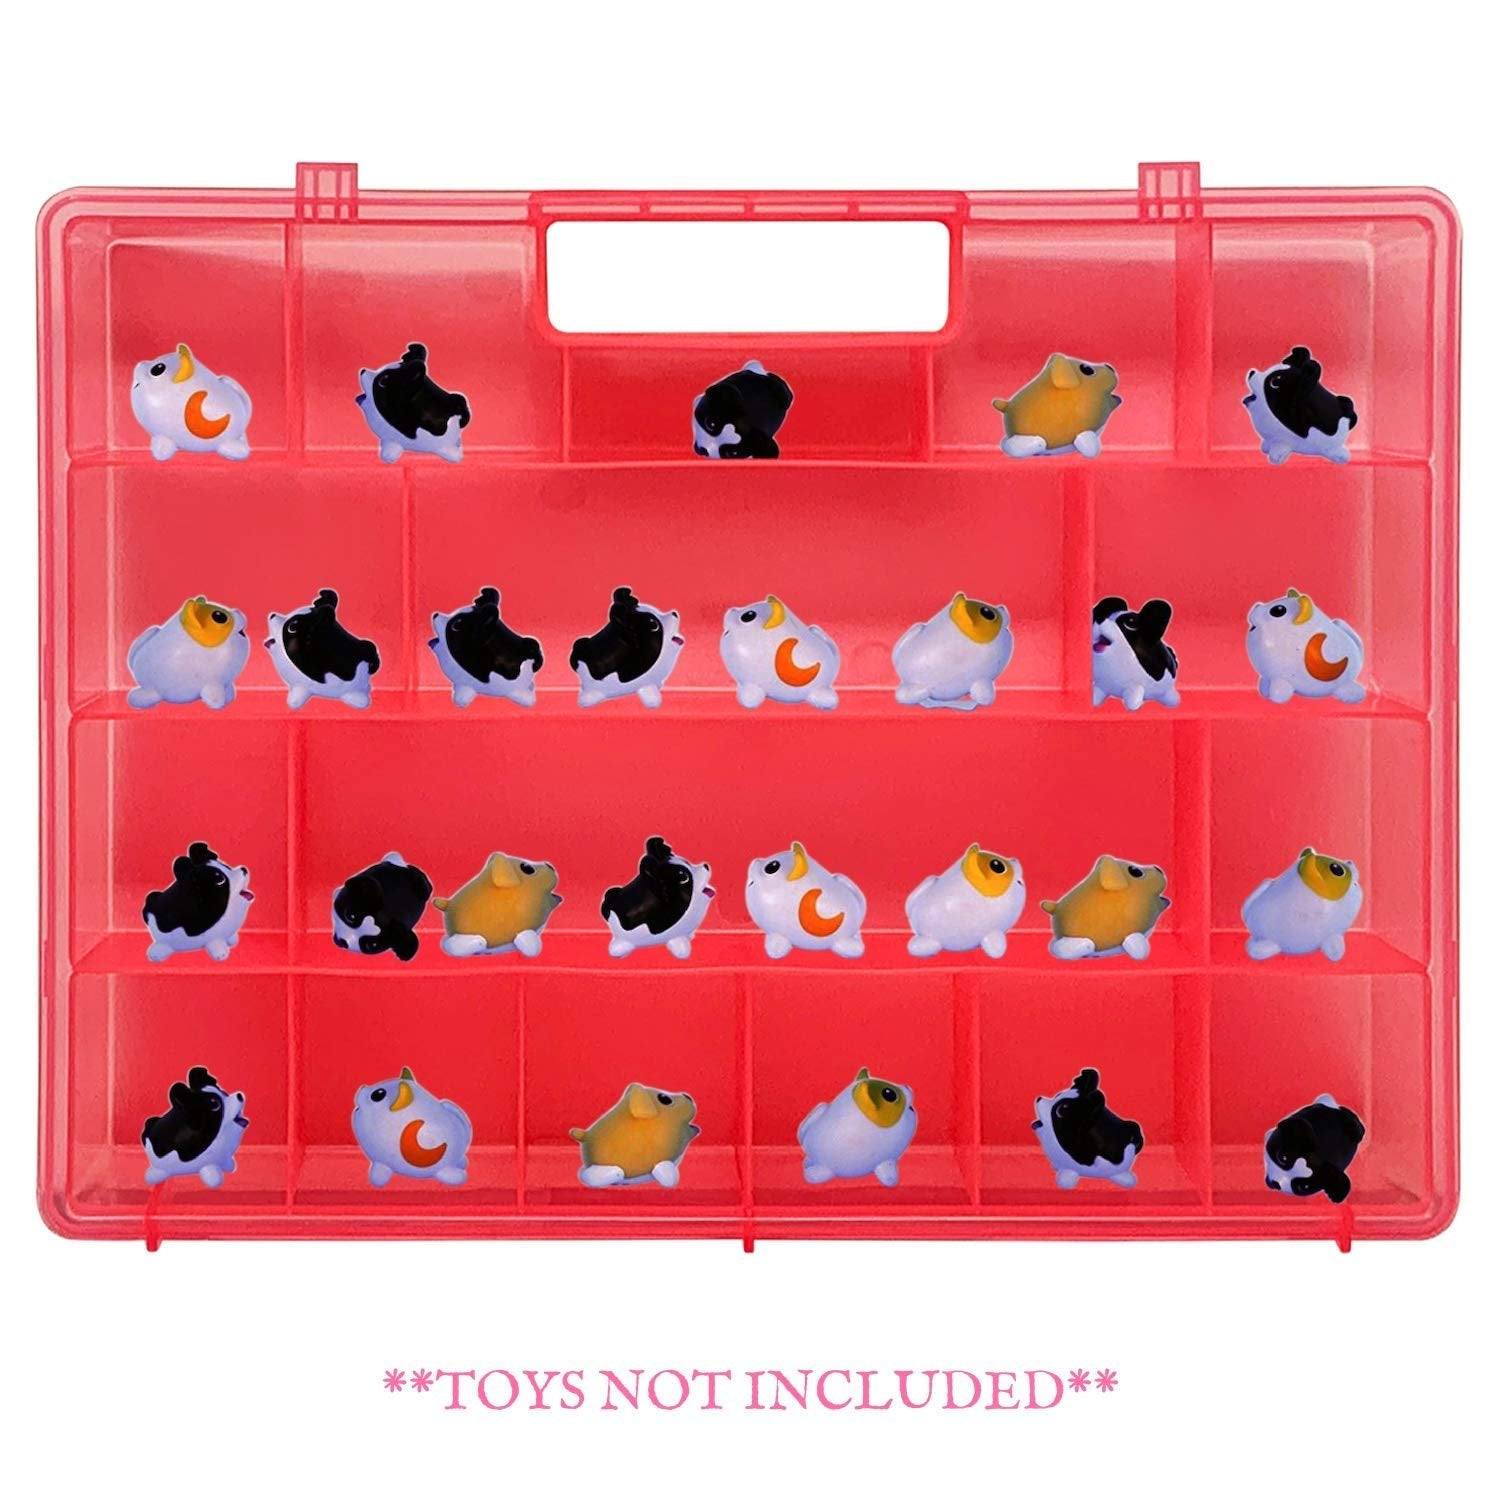 Life Made Better Strengthened Design, Pink Toy Storage Carrying Box. Figures Playset Organizer Compatible with Chubby Puppies, Accessories for Kids LMB